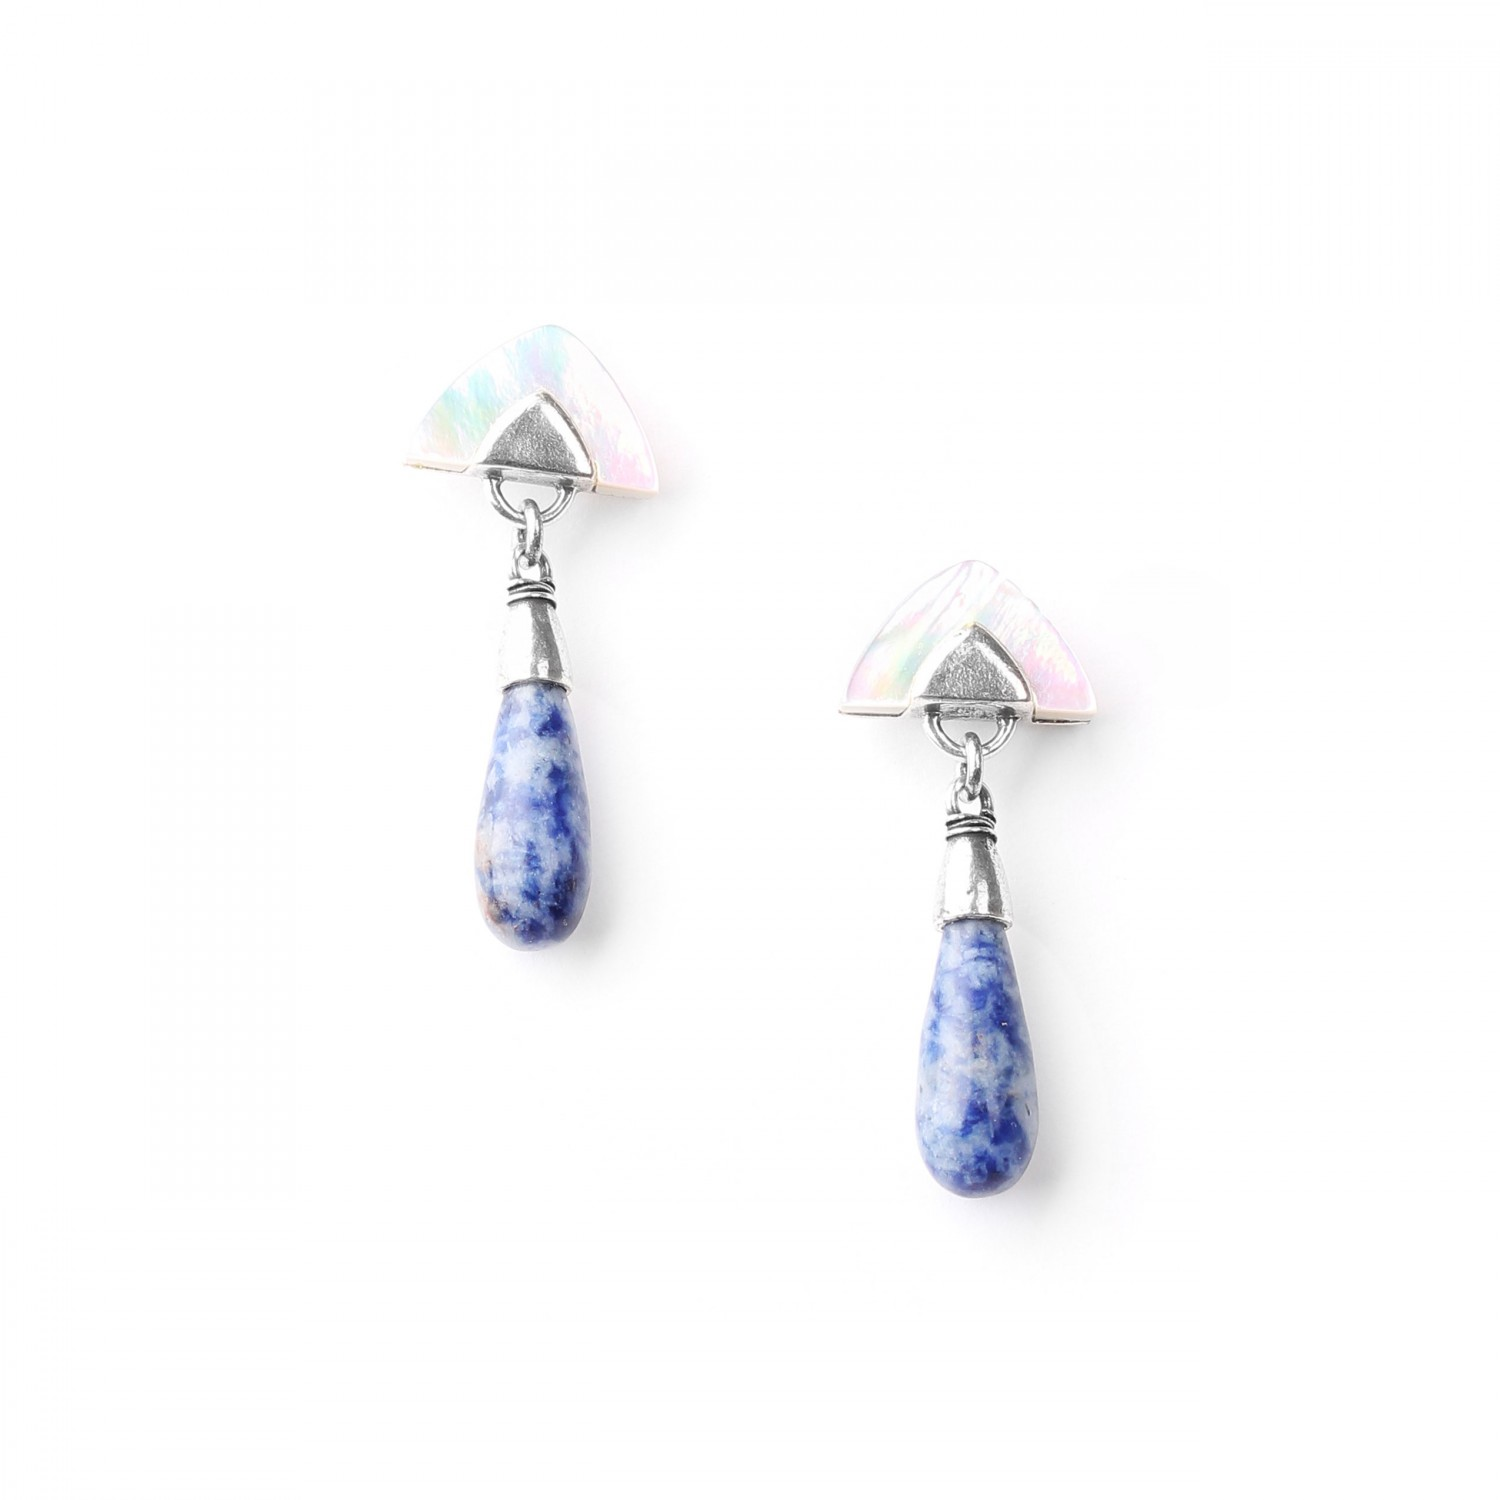 CYCLADES little sodalite drop ER